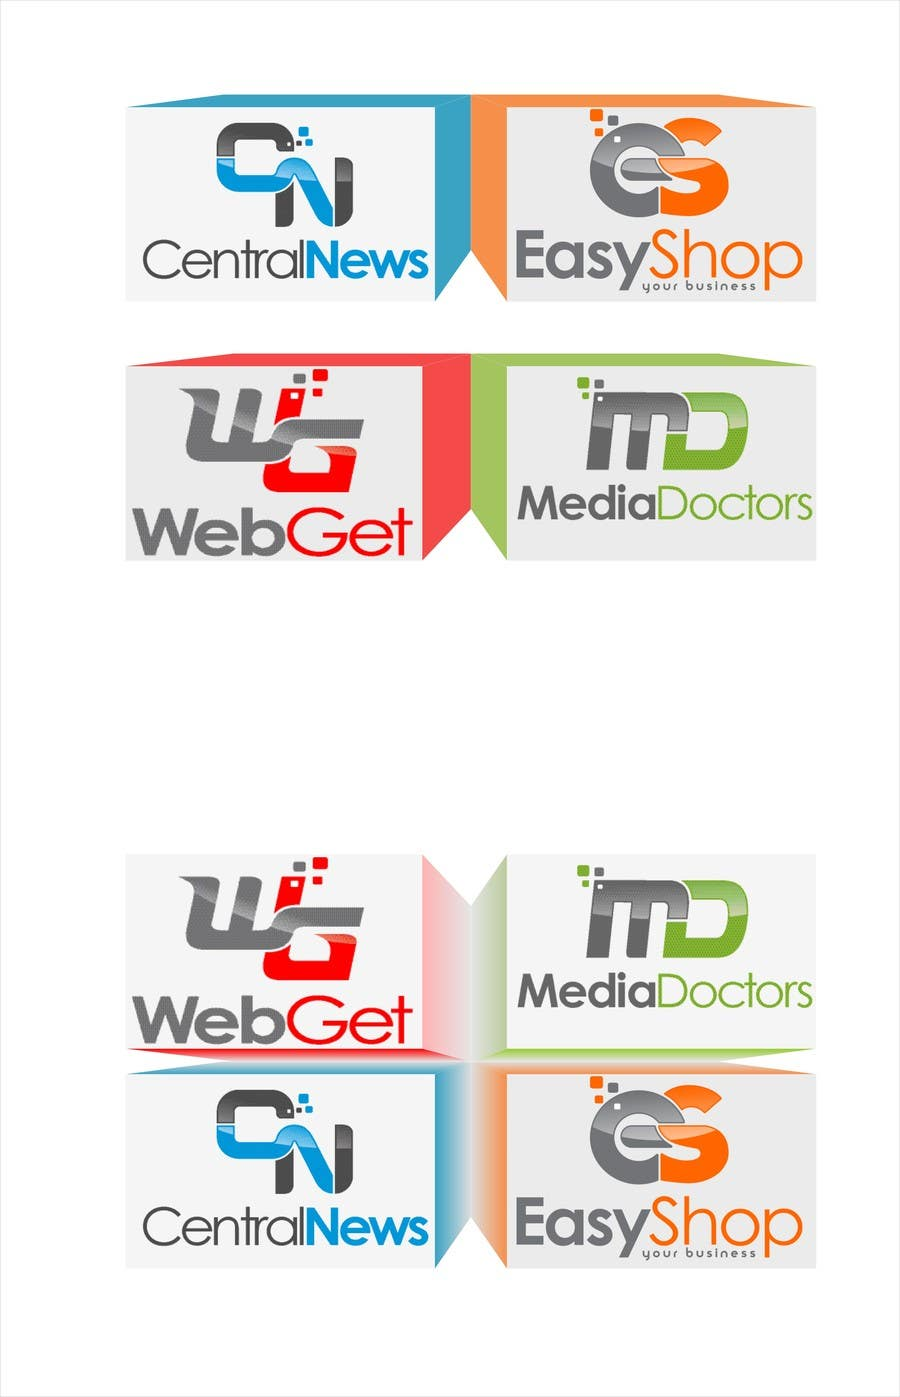 #3 for Visual style for displaying logos by andreisiminea